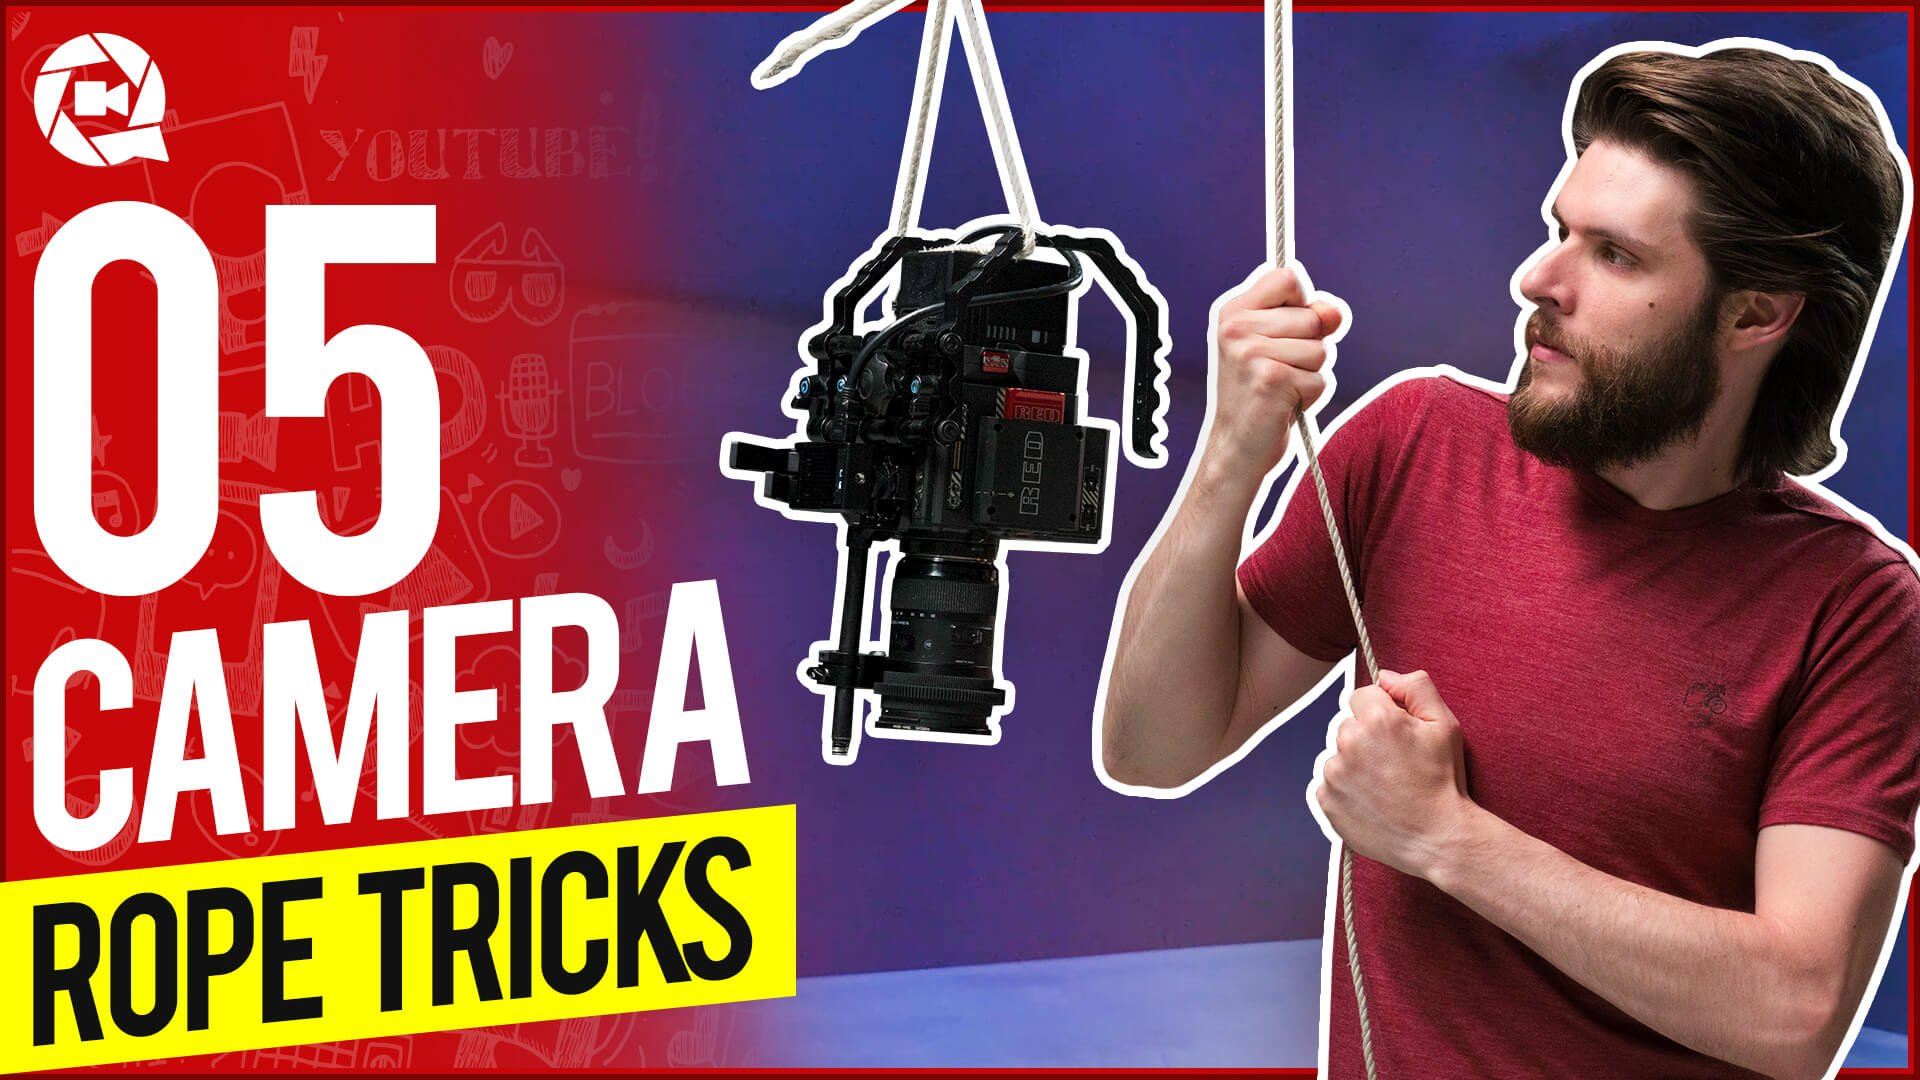 Insane Camera Tricks using a Rope